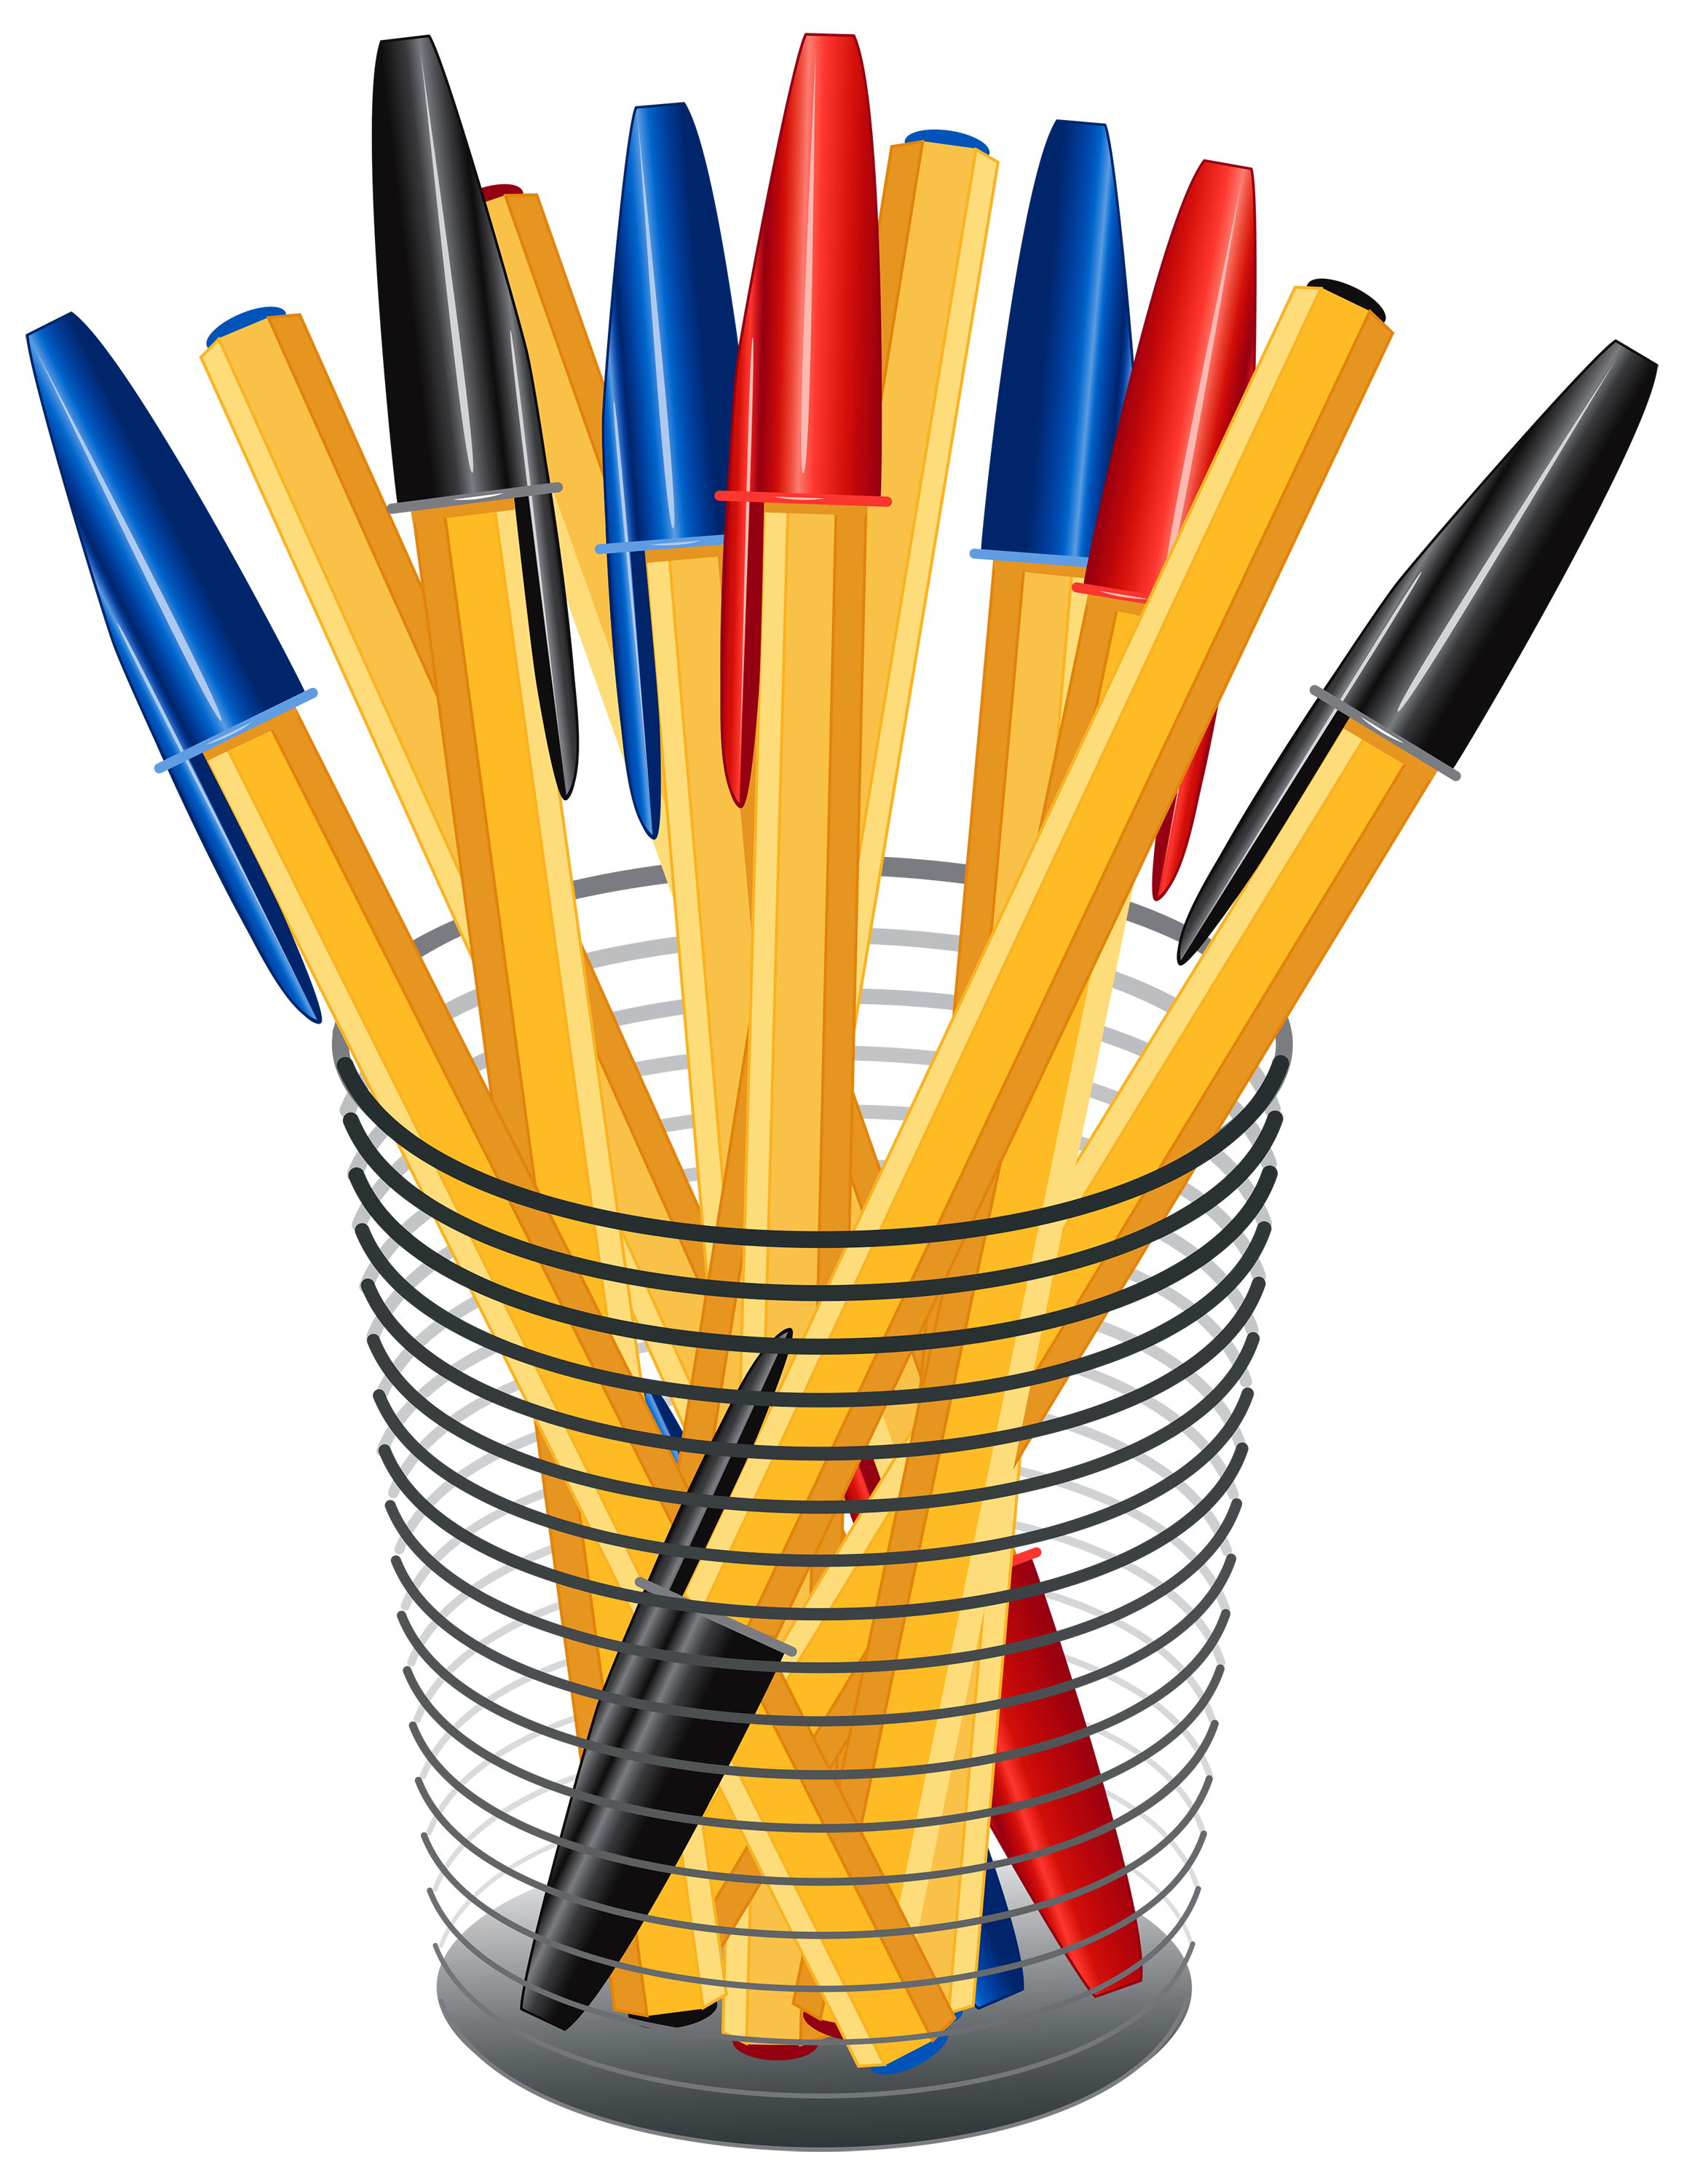 Clipart books pen. Metal cup with pens